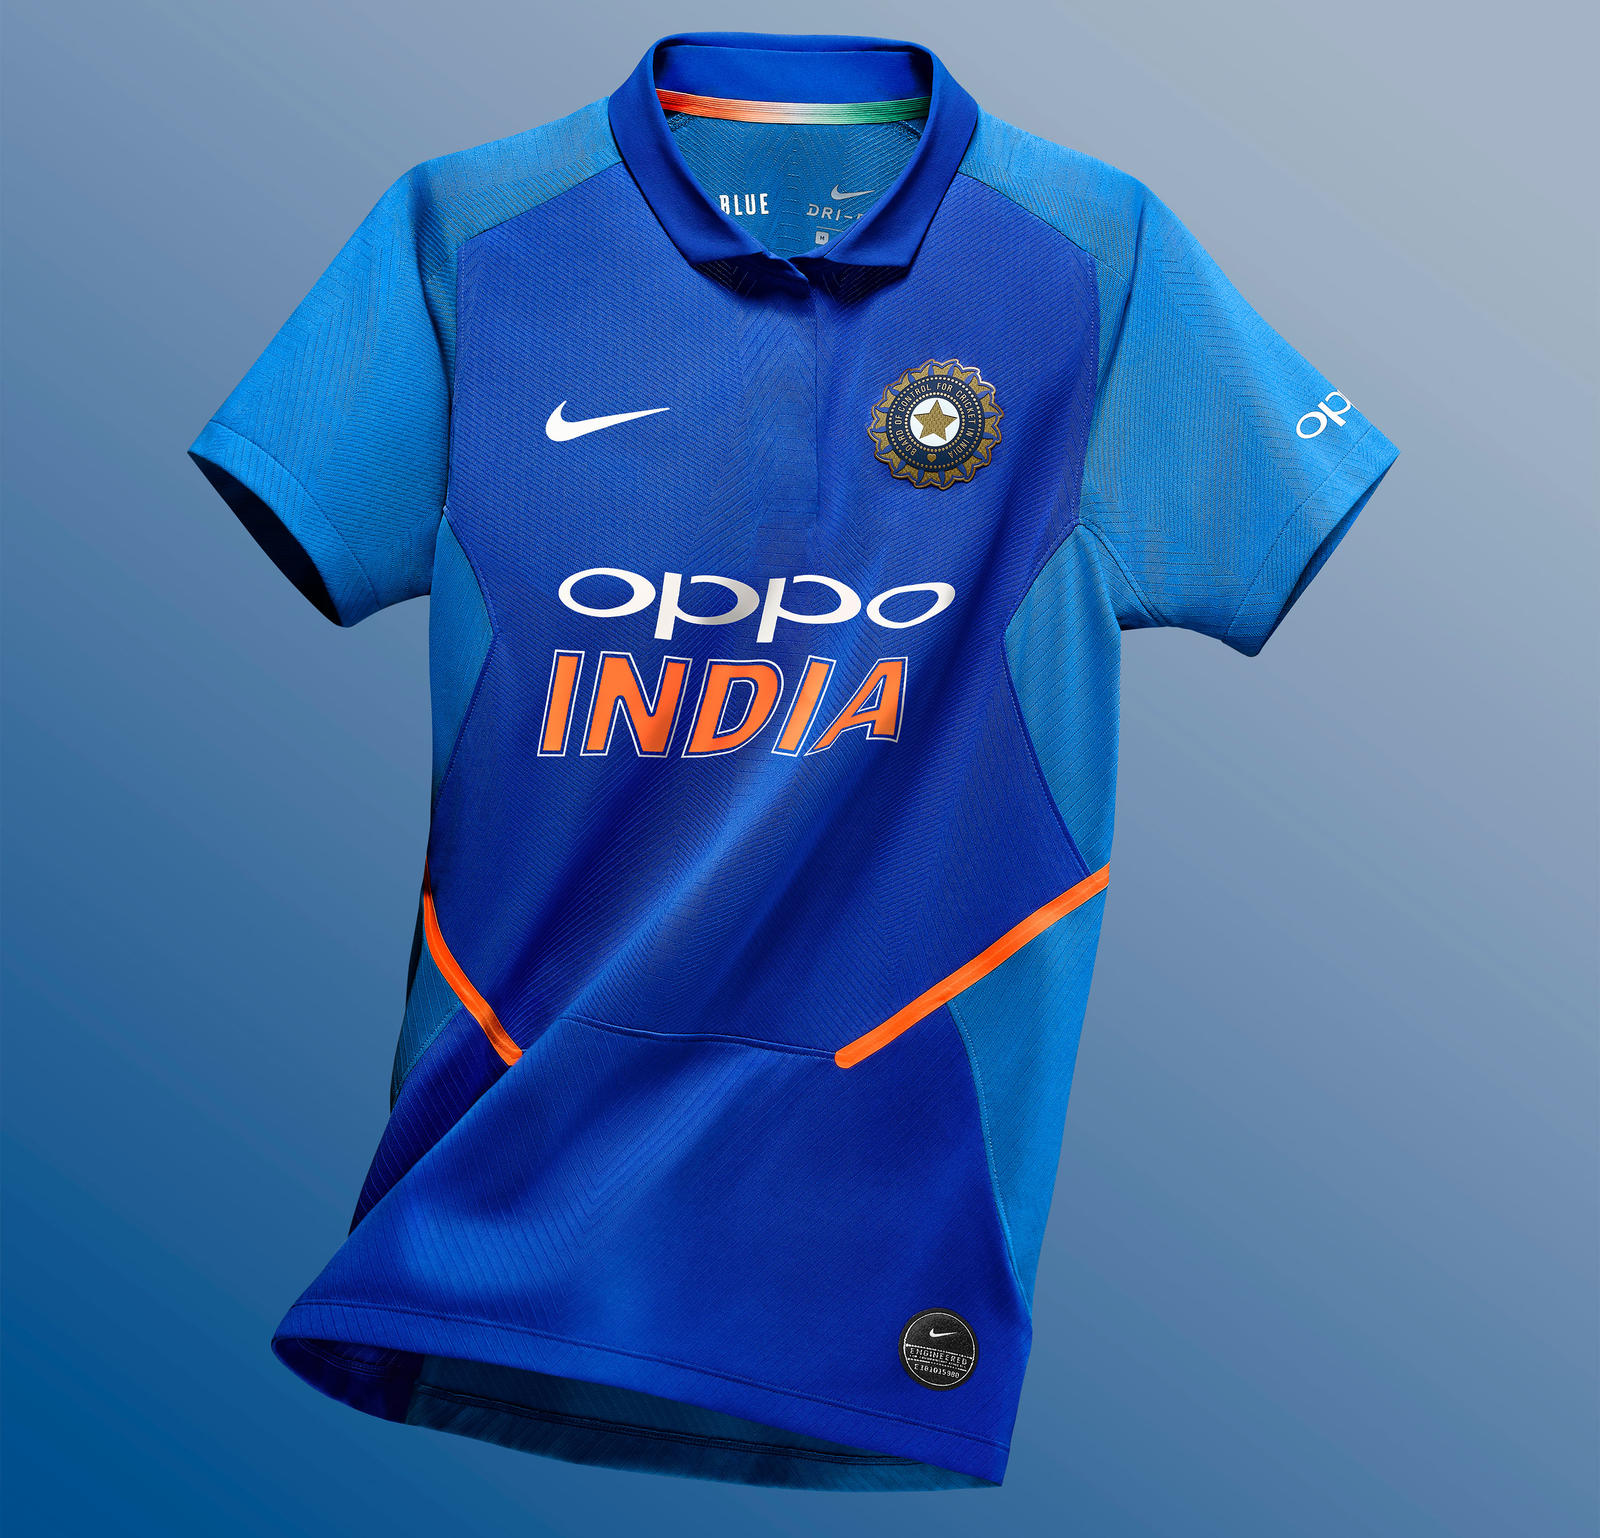 Nike Cricket India National Team Kits 2019 56751 387376 R05 Nike Apla Sp19  Cricket Womens Stadium 0b792860b